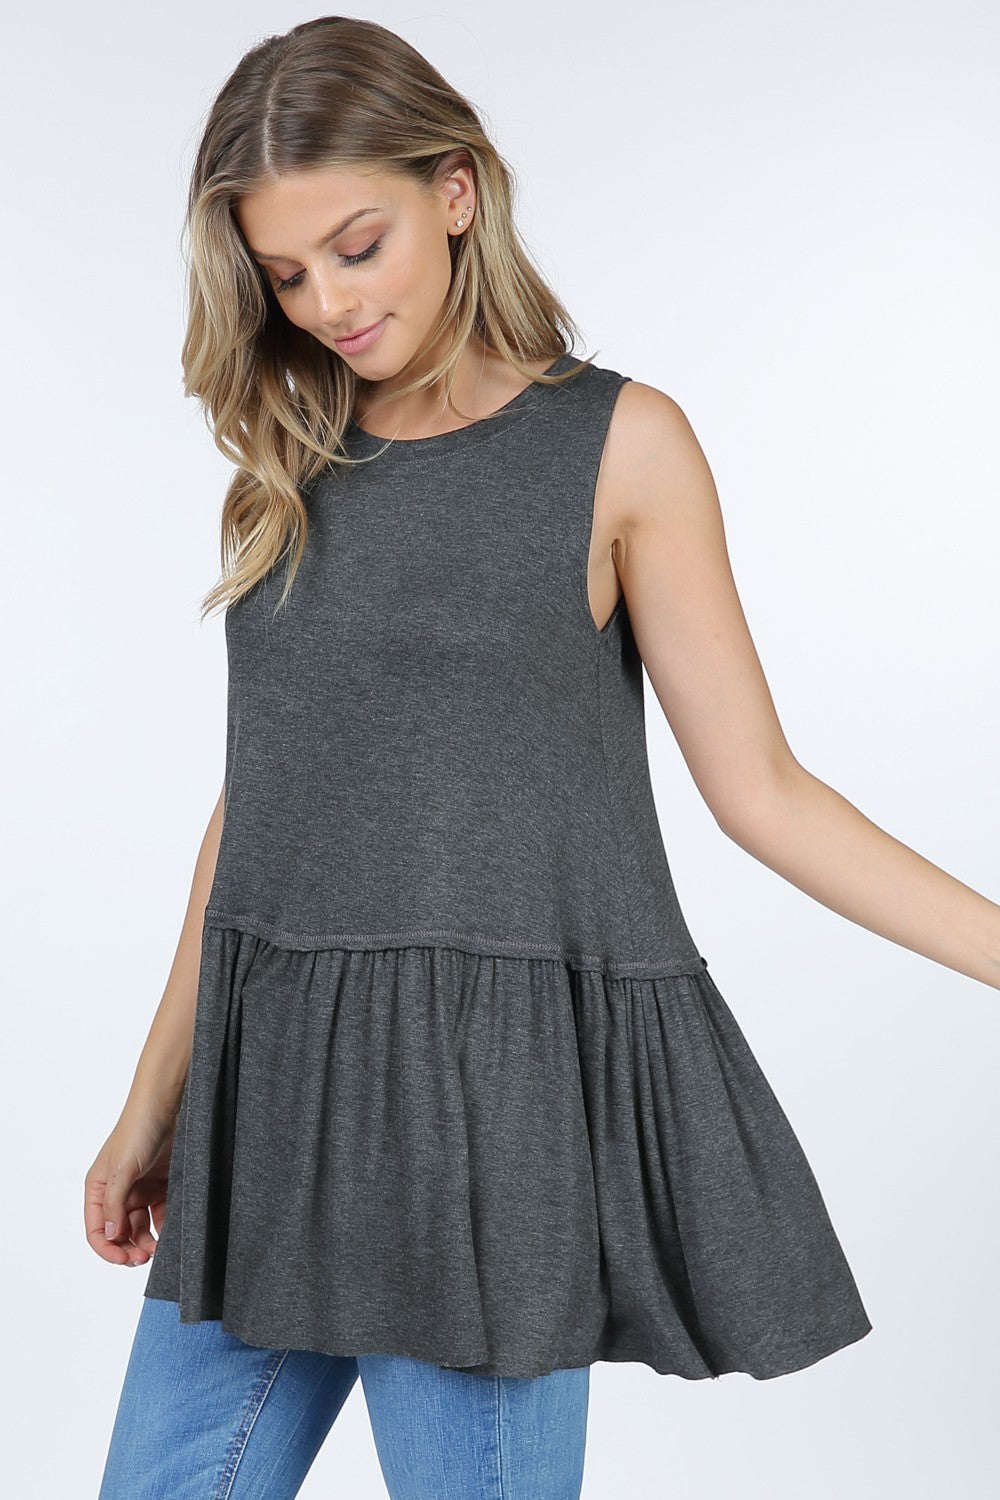 Charcoal Basic Women's Ruffle Top